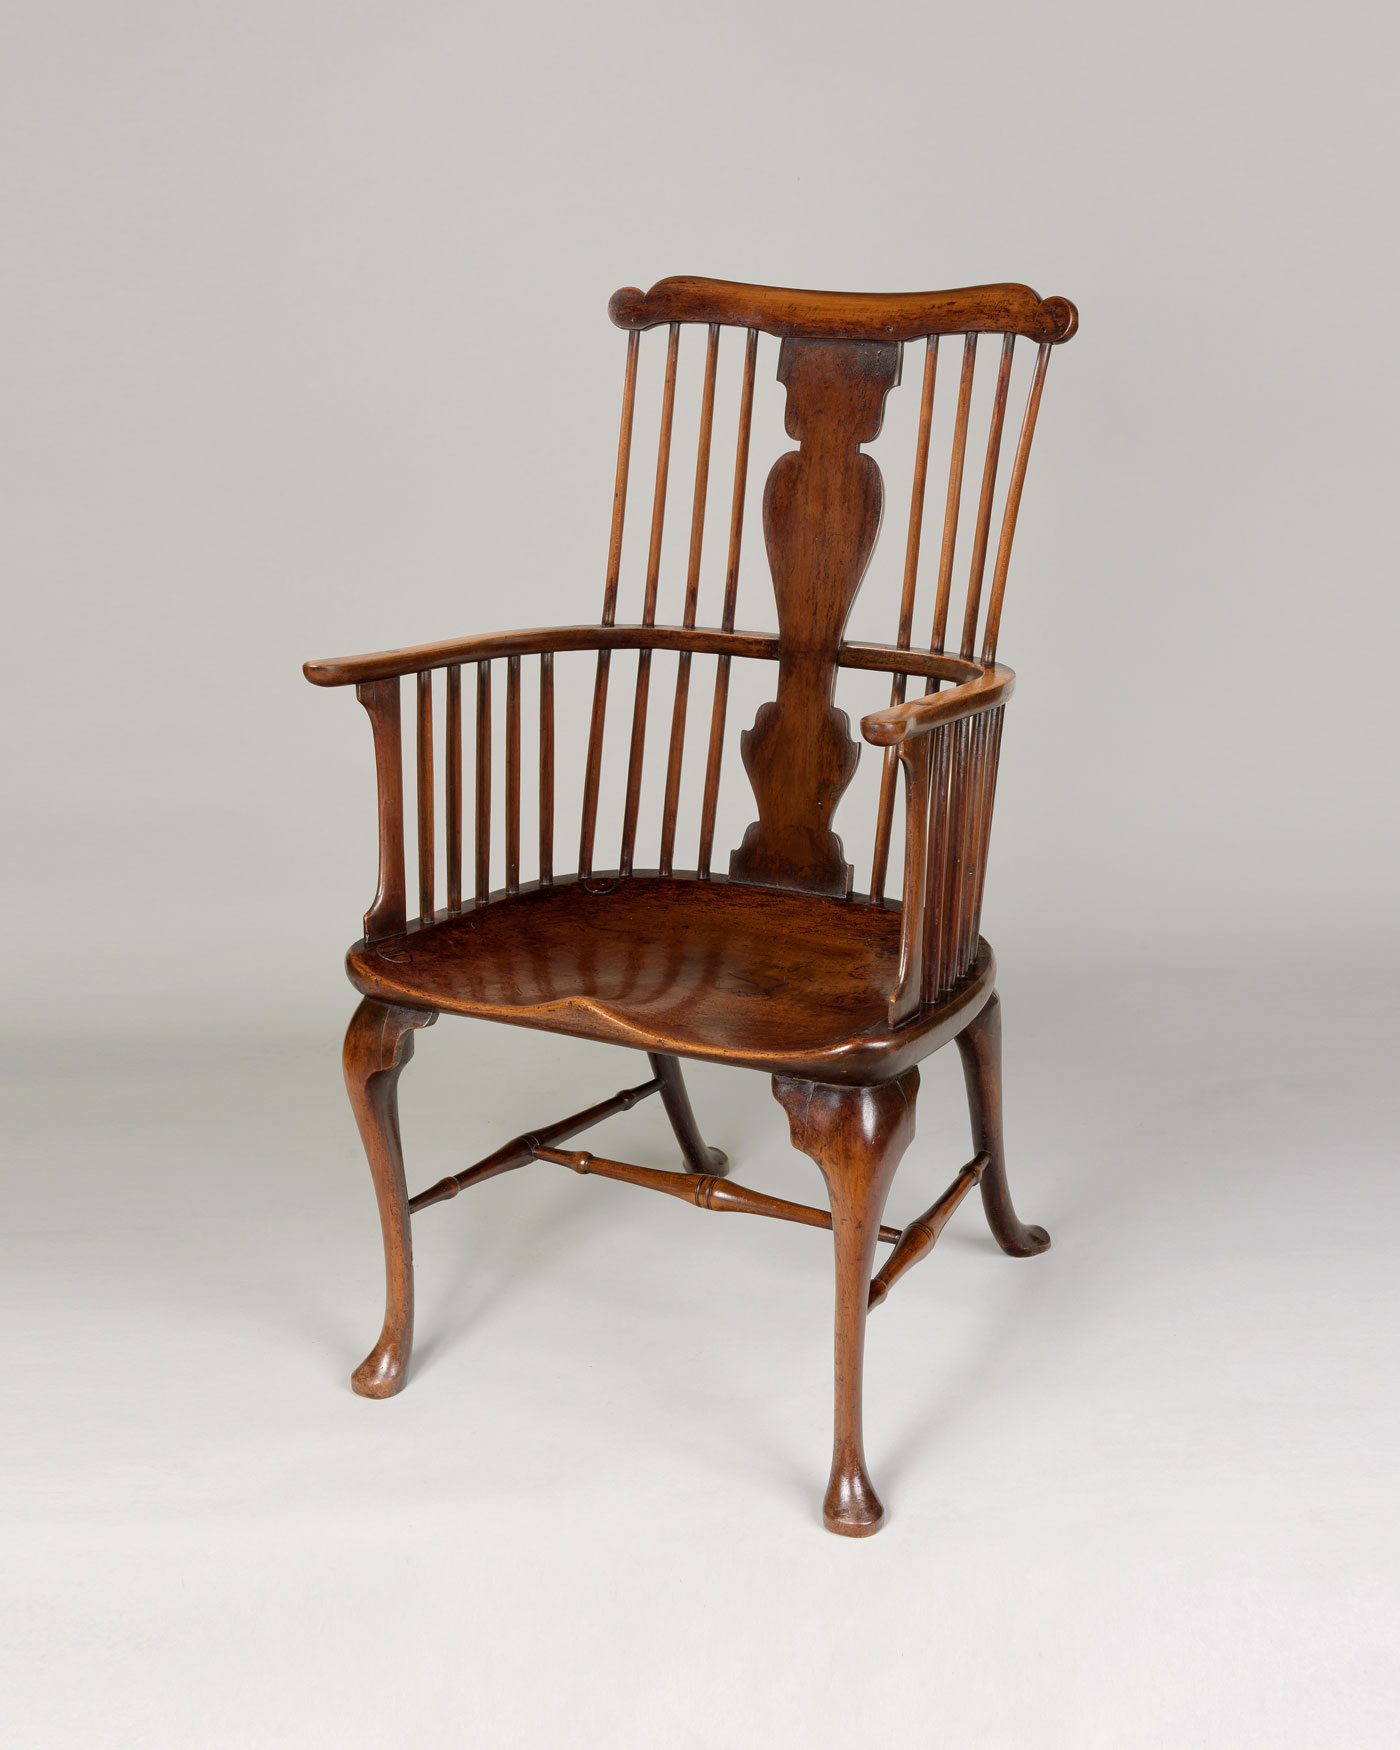 GEORGE III PERIOD WINDSOR CHAIR.  rare walnut and sycamore comb-back Thames Valley Windsor chair